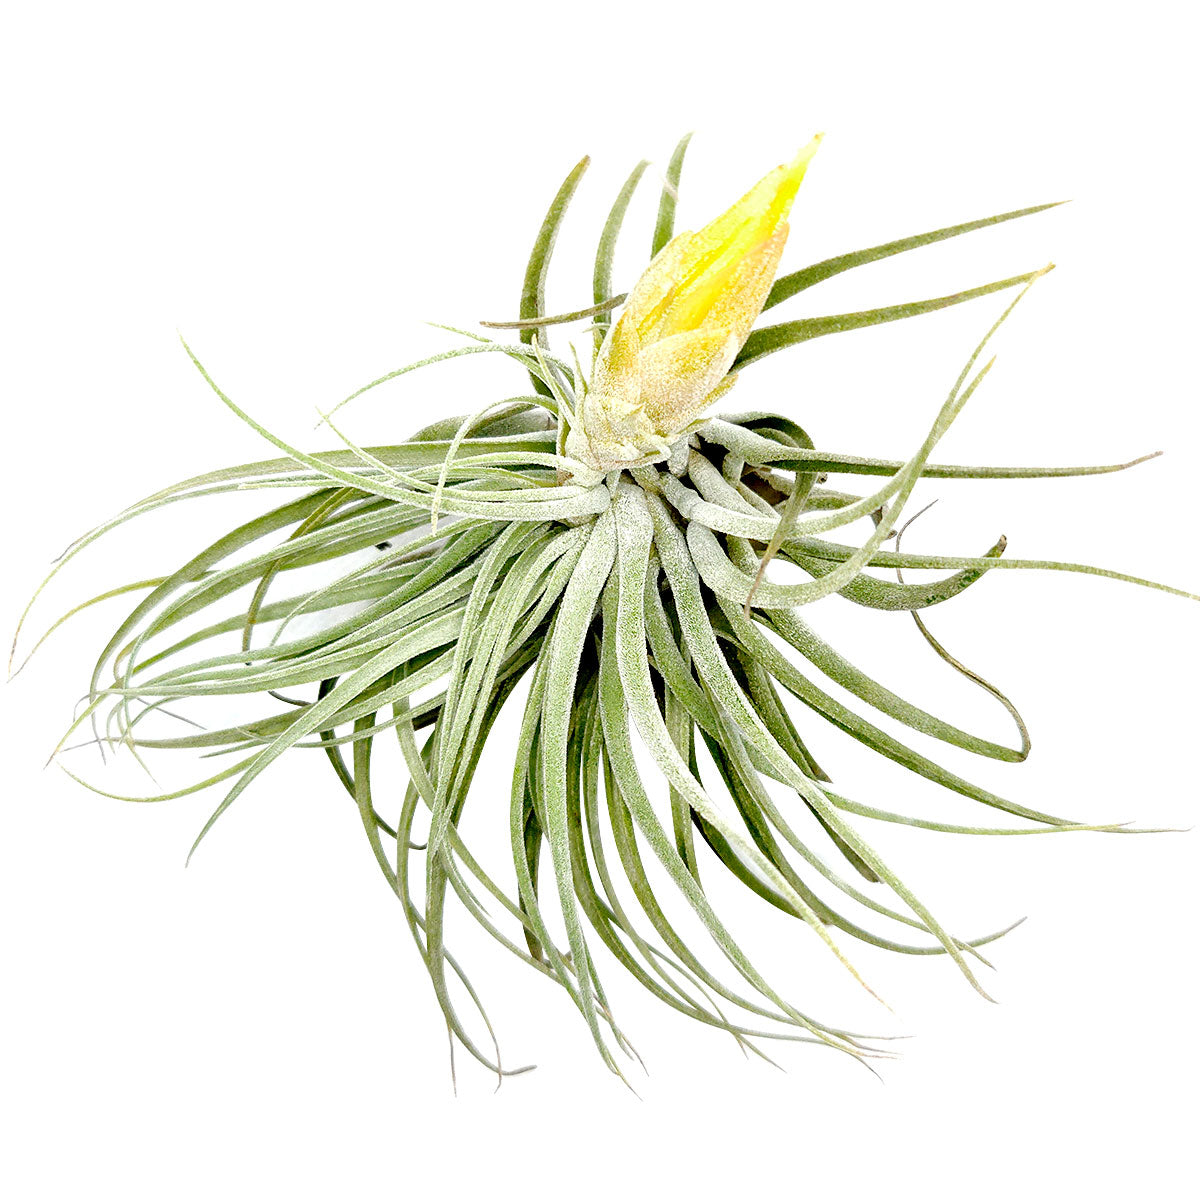 Tillandsia Matudae air plant for sale, unique gift decor ideas, air plant subscription delivery monthly, Tillandsia Matudae with air plant care guide, rare air plant